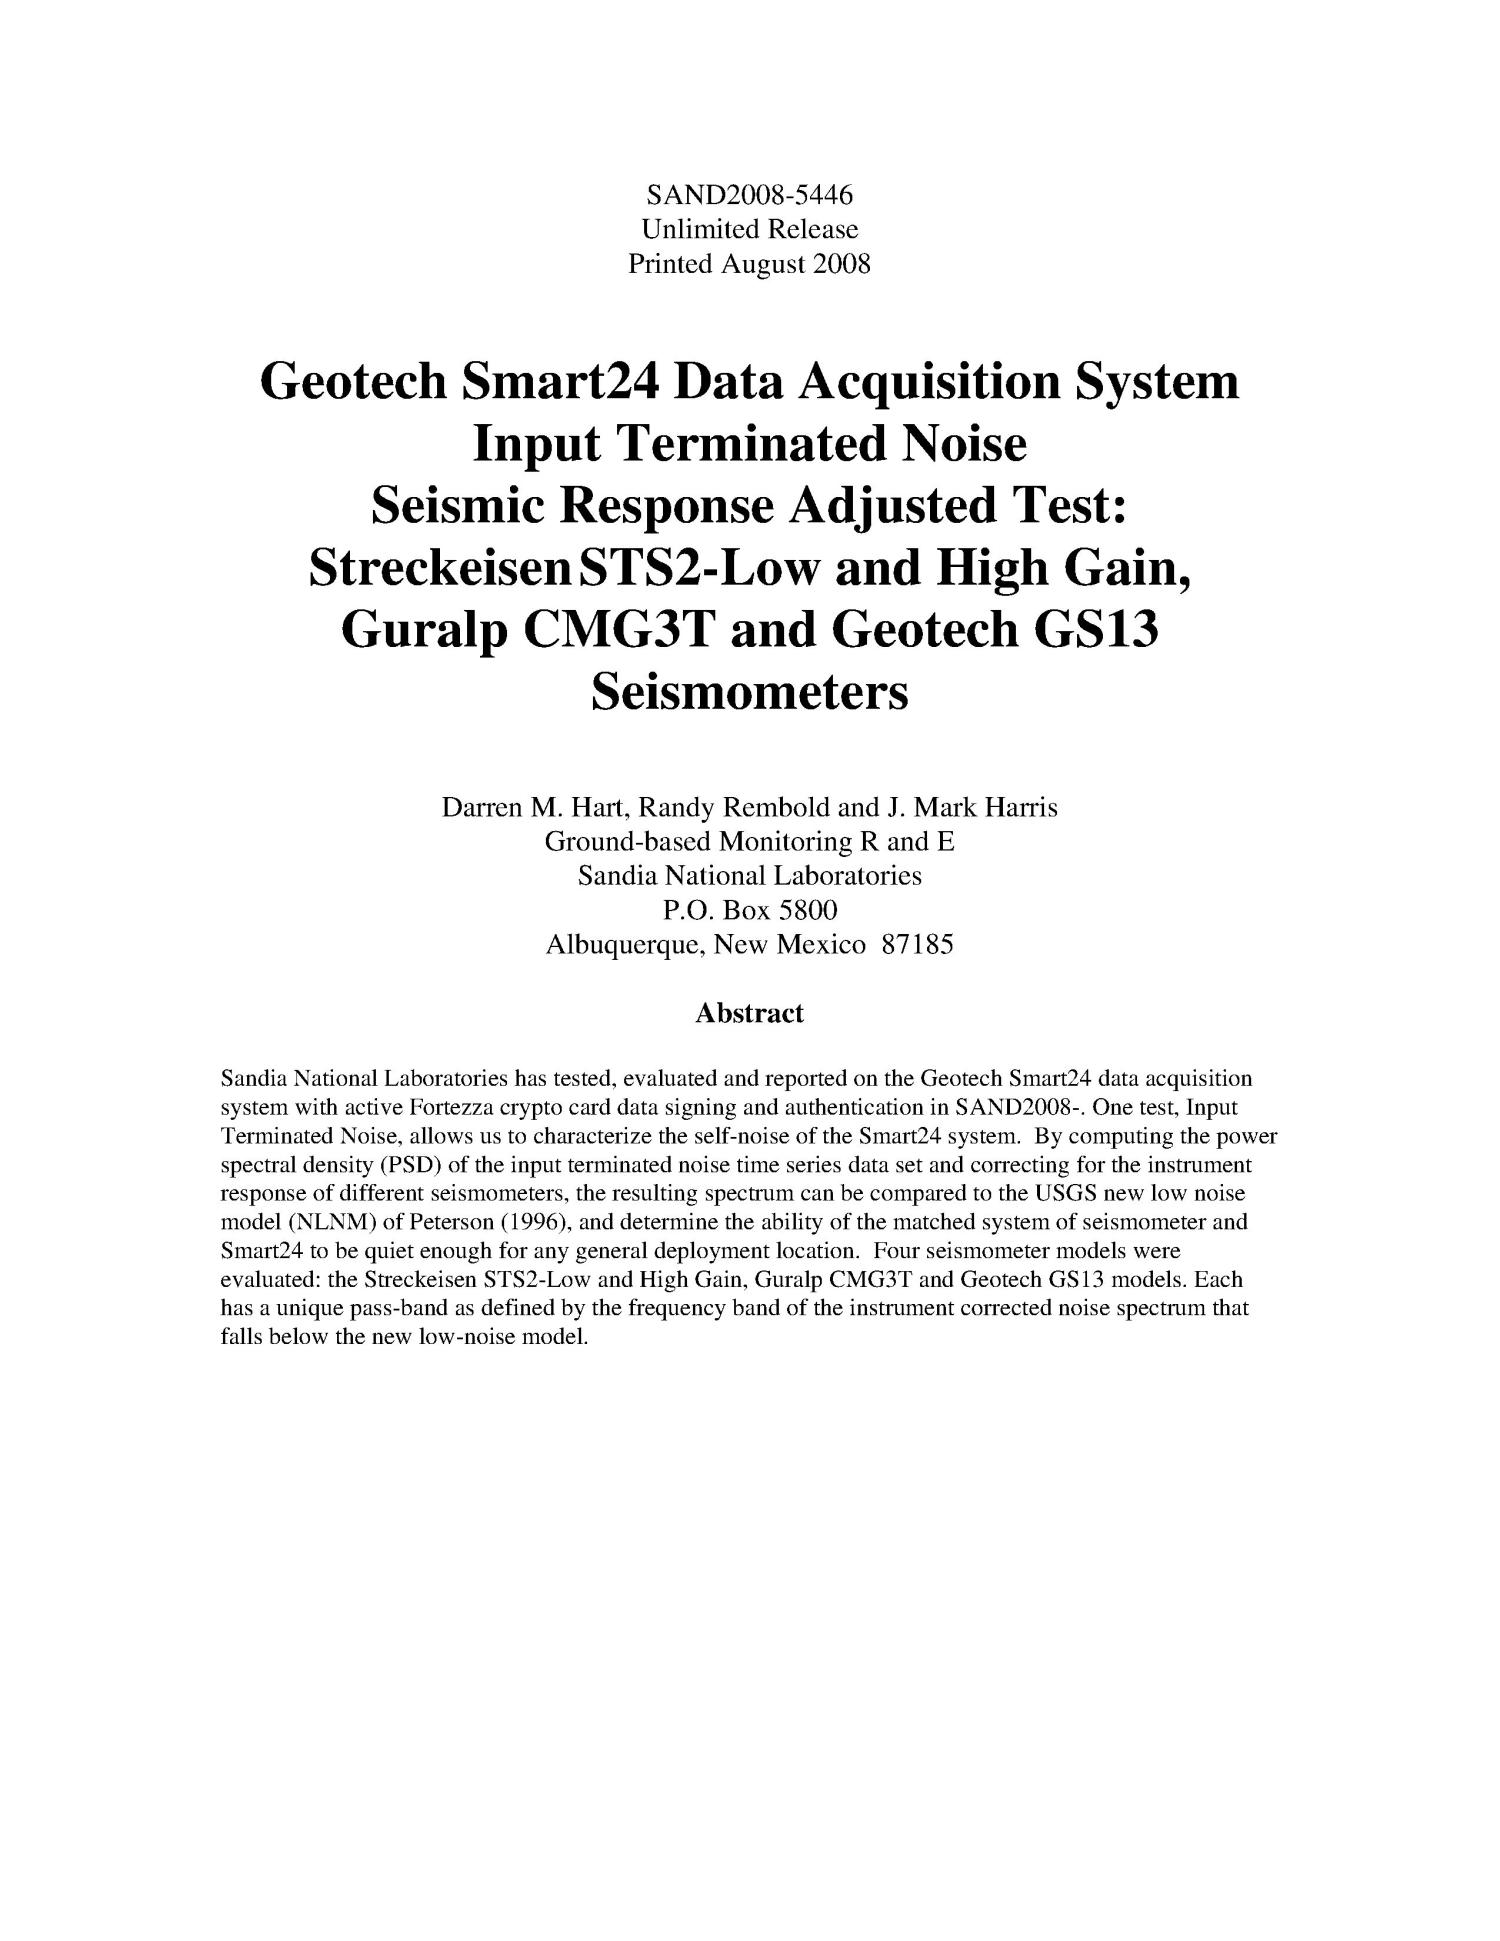 Geotech Smart24 data acquisition system input terminated noise seismic response adjusted test : StreckeisenSTS2-low and high gain, Guralp CMG3T and Geotech GS13 seismometers.                                                                                                      [Sequence #]: 3 of 30